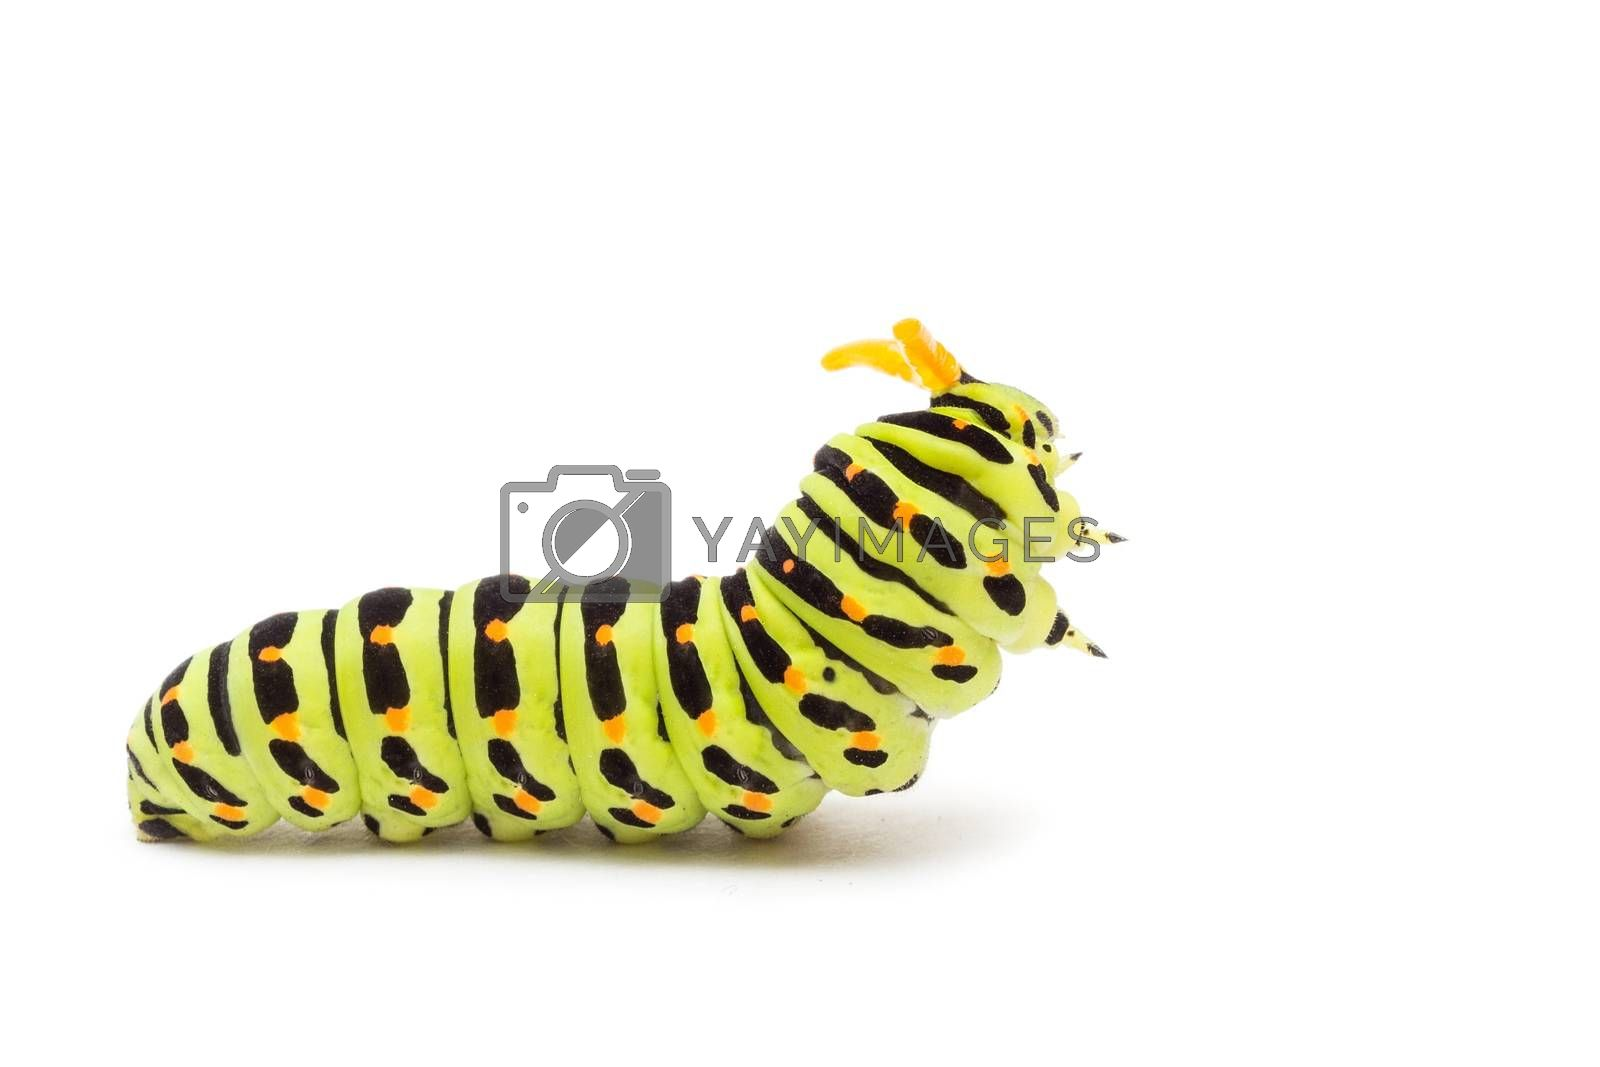 Swallowtail caterpillar or Papilio Machaon on a white background